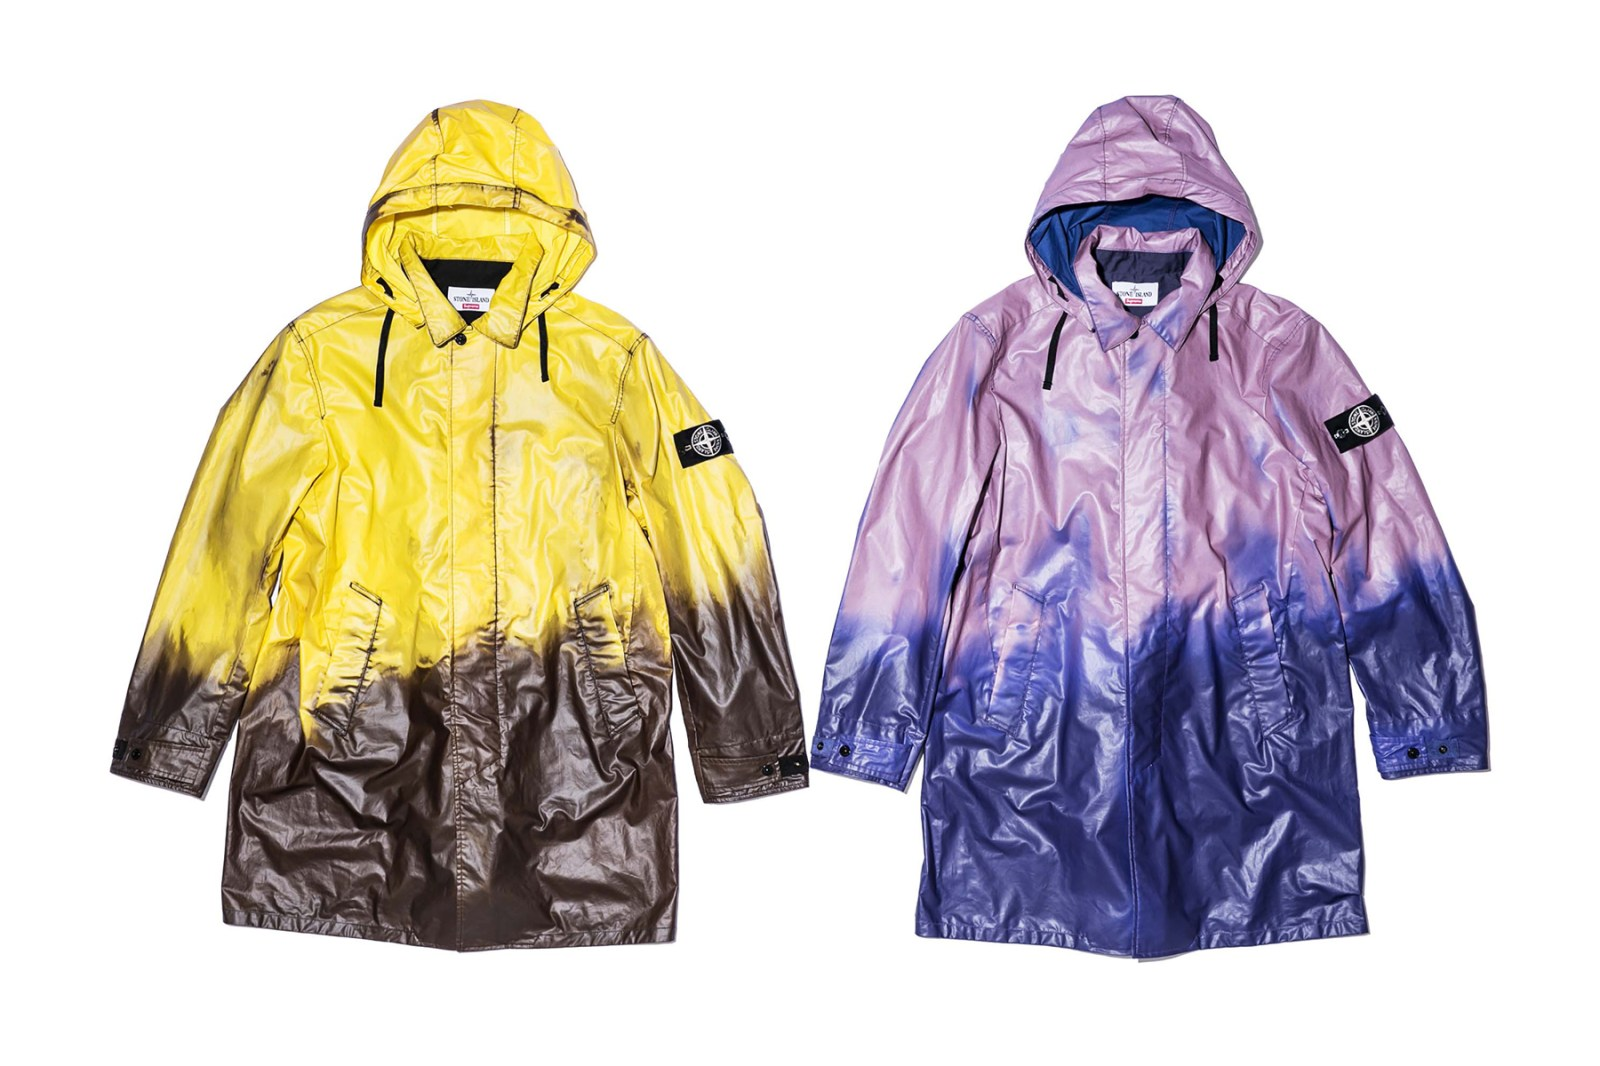 supreme x stone island 2016 spring summer collection hypebeast. Black Bedroom Furniture Sets. Home Design Ideas